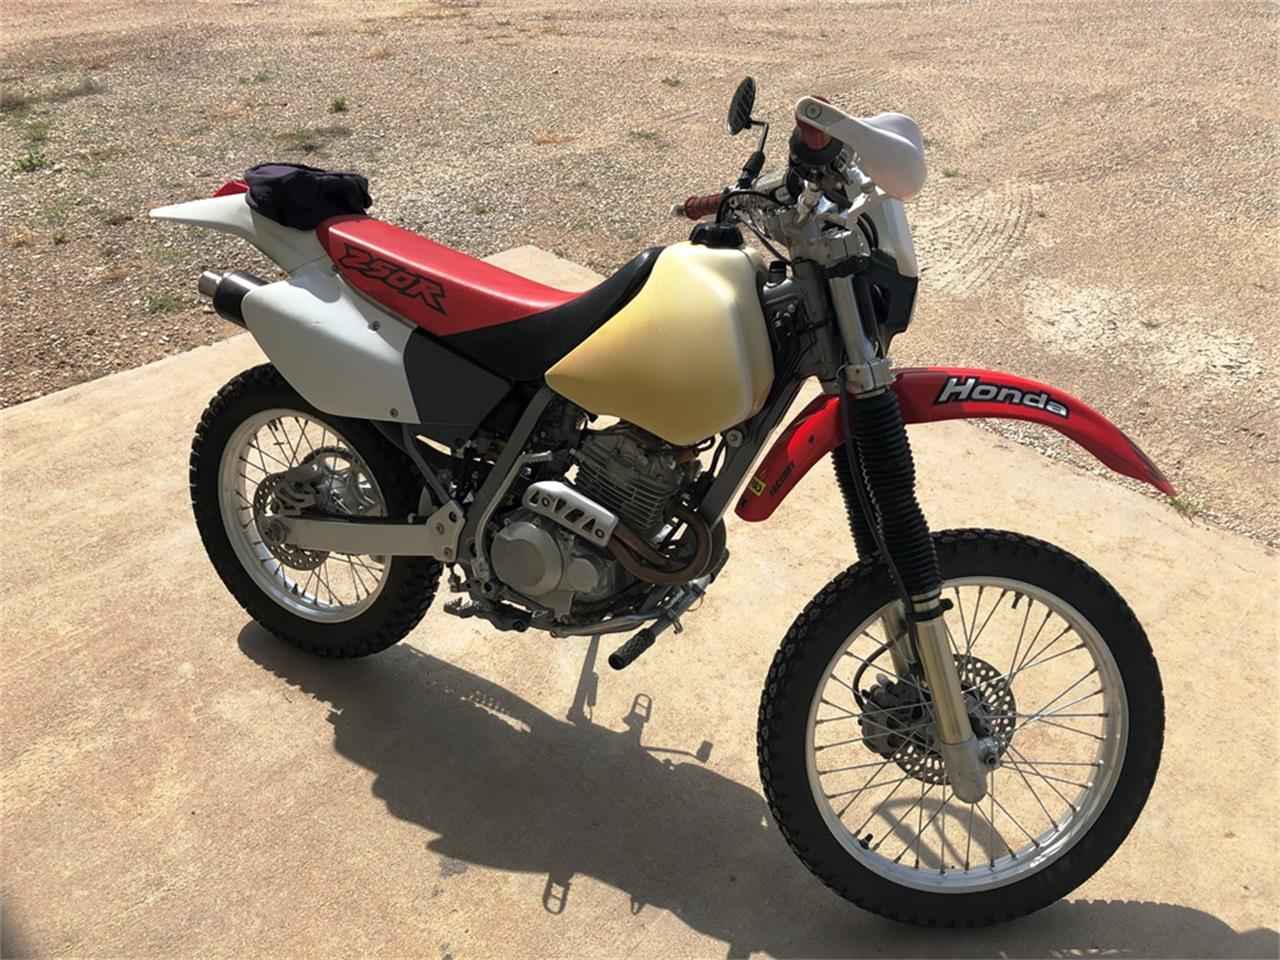 1999 Honda Motorcycle (CC-1262149) for sale in Great Bend, Kansas